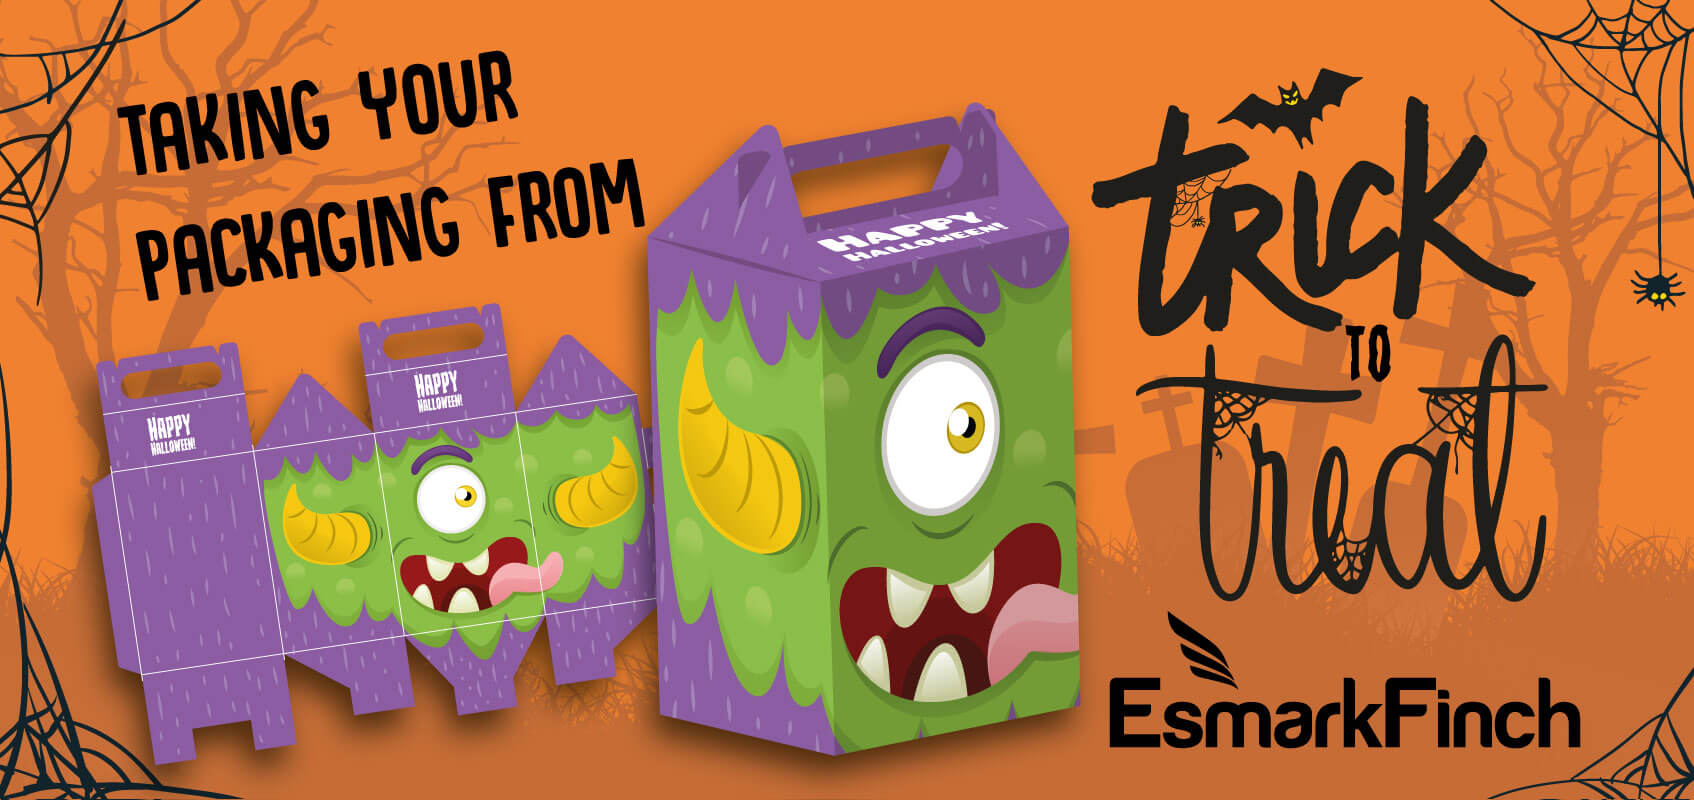 turn your packaging from a disaster to a treat with Esmark Finch